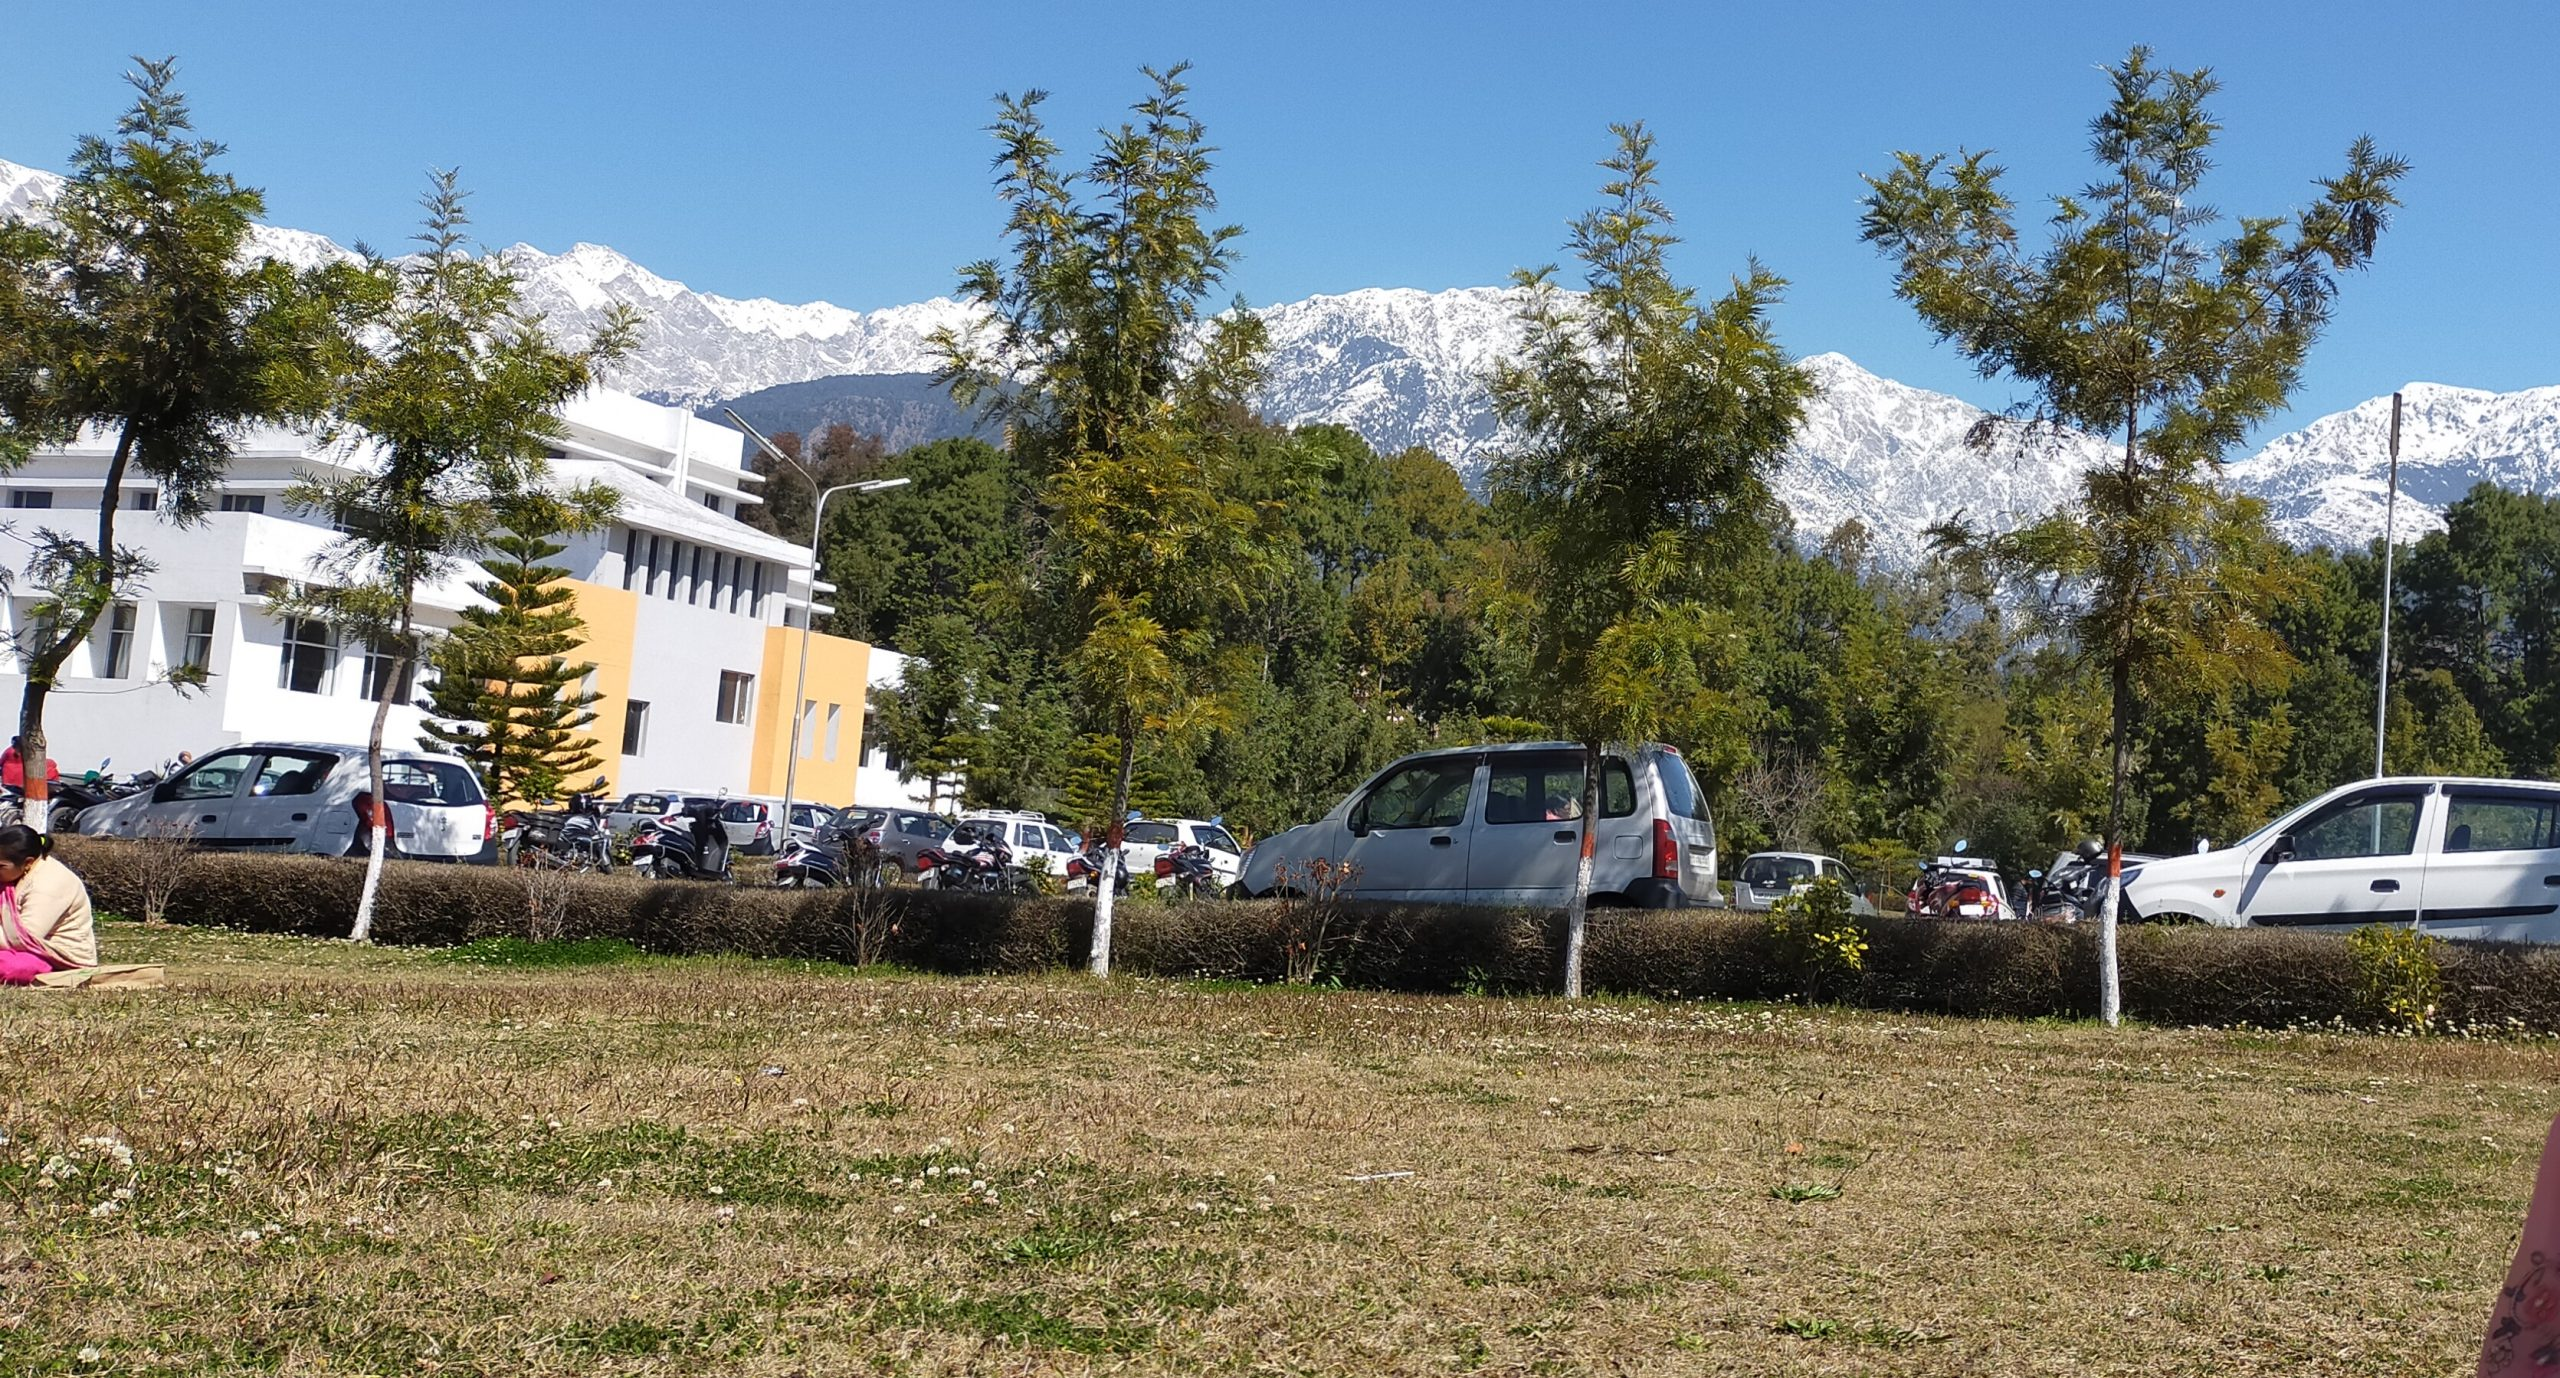 Vehicles parked near a building in Palampur